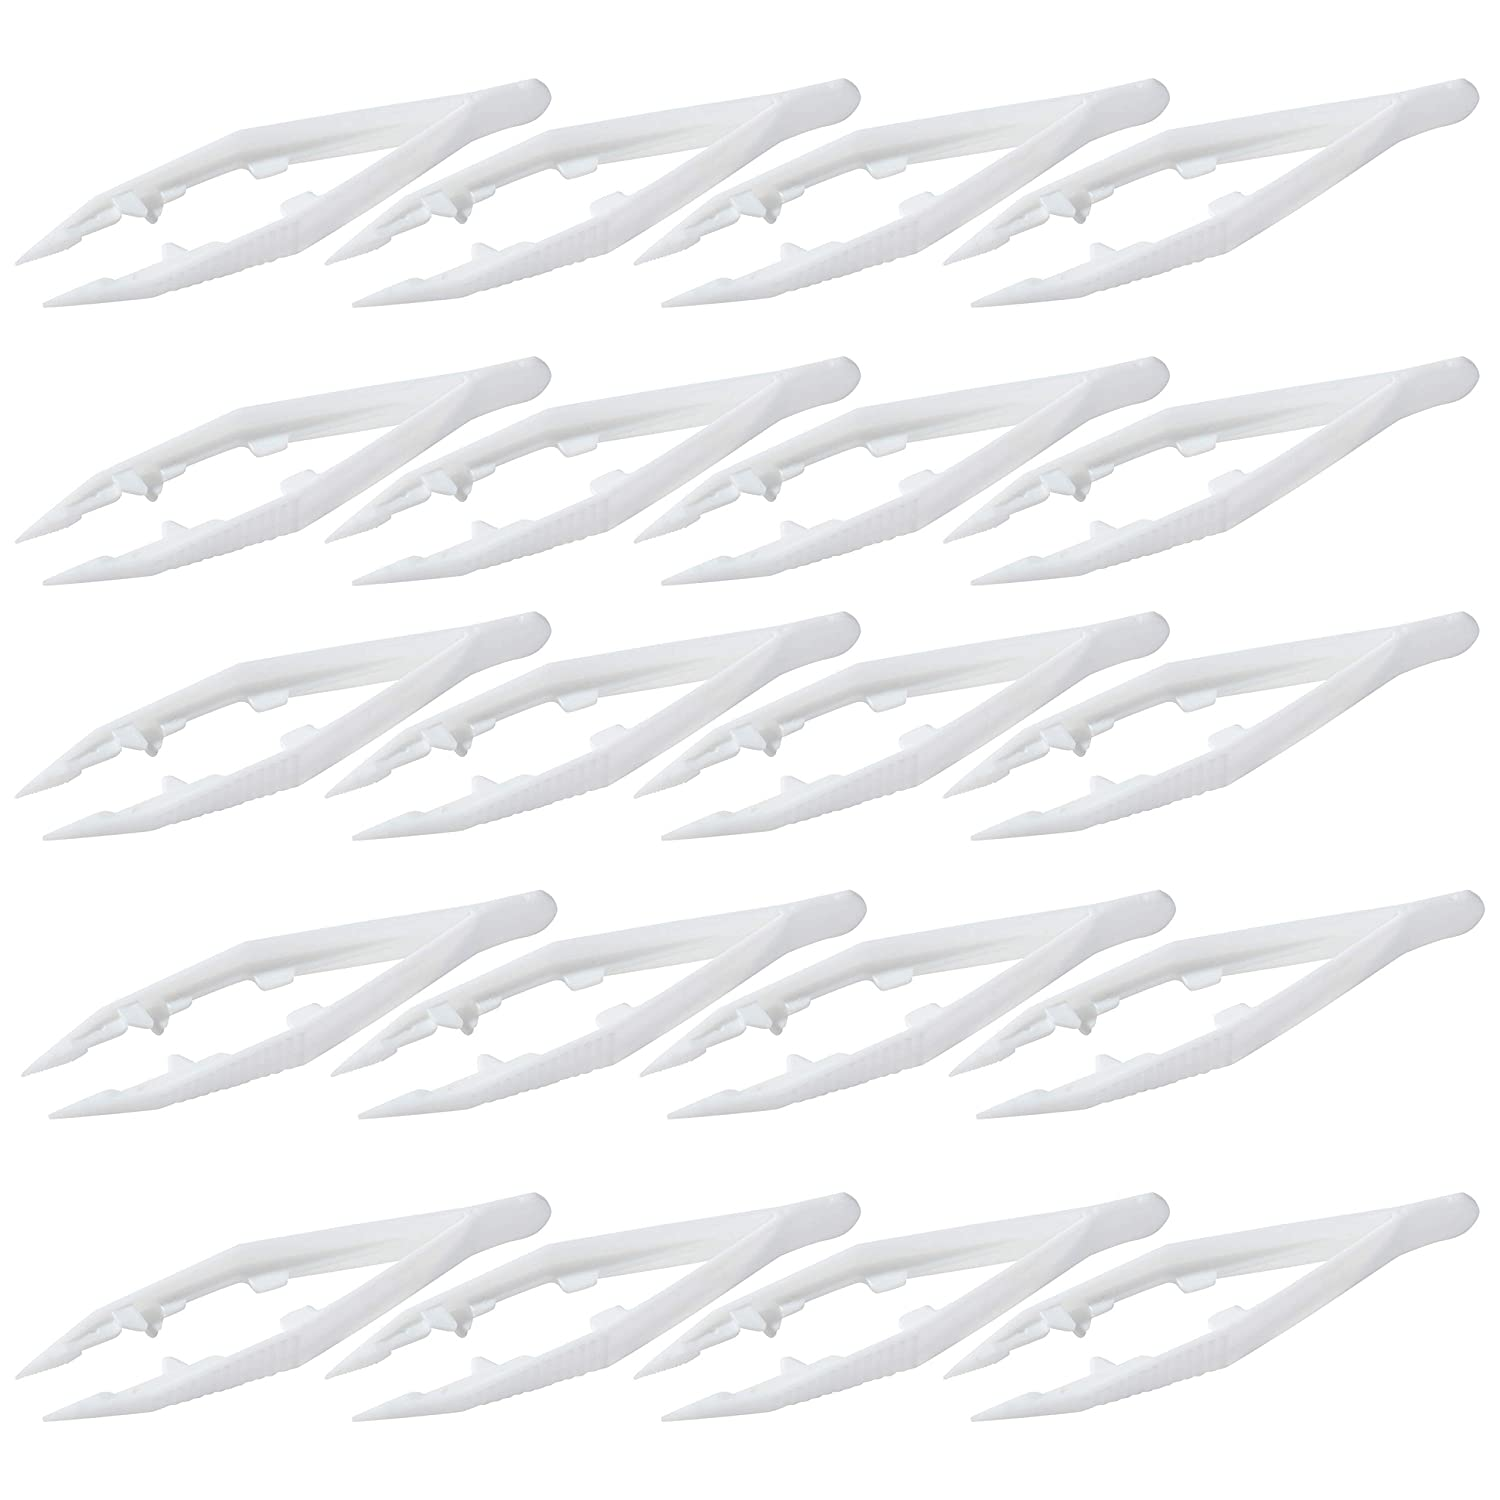 Plastic Bead Tweezers - 20-Pack Craft Tweezers, 4.3-Inch White Plastic Forceps for Fuse Bead Kids DIY